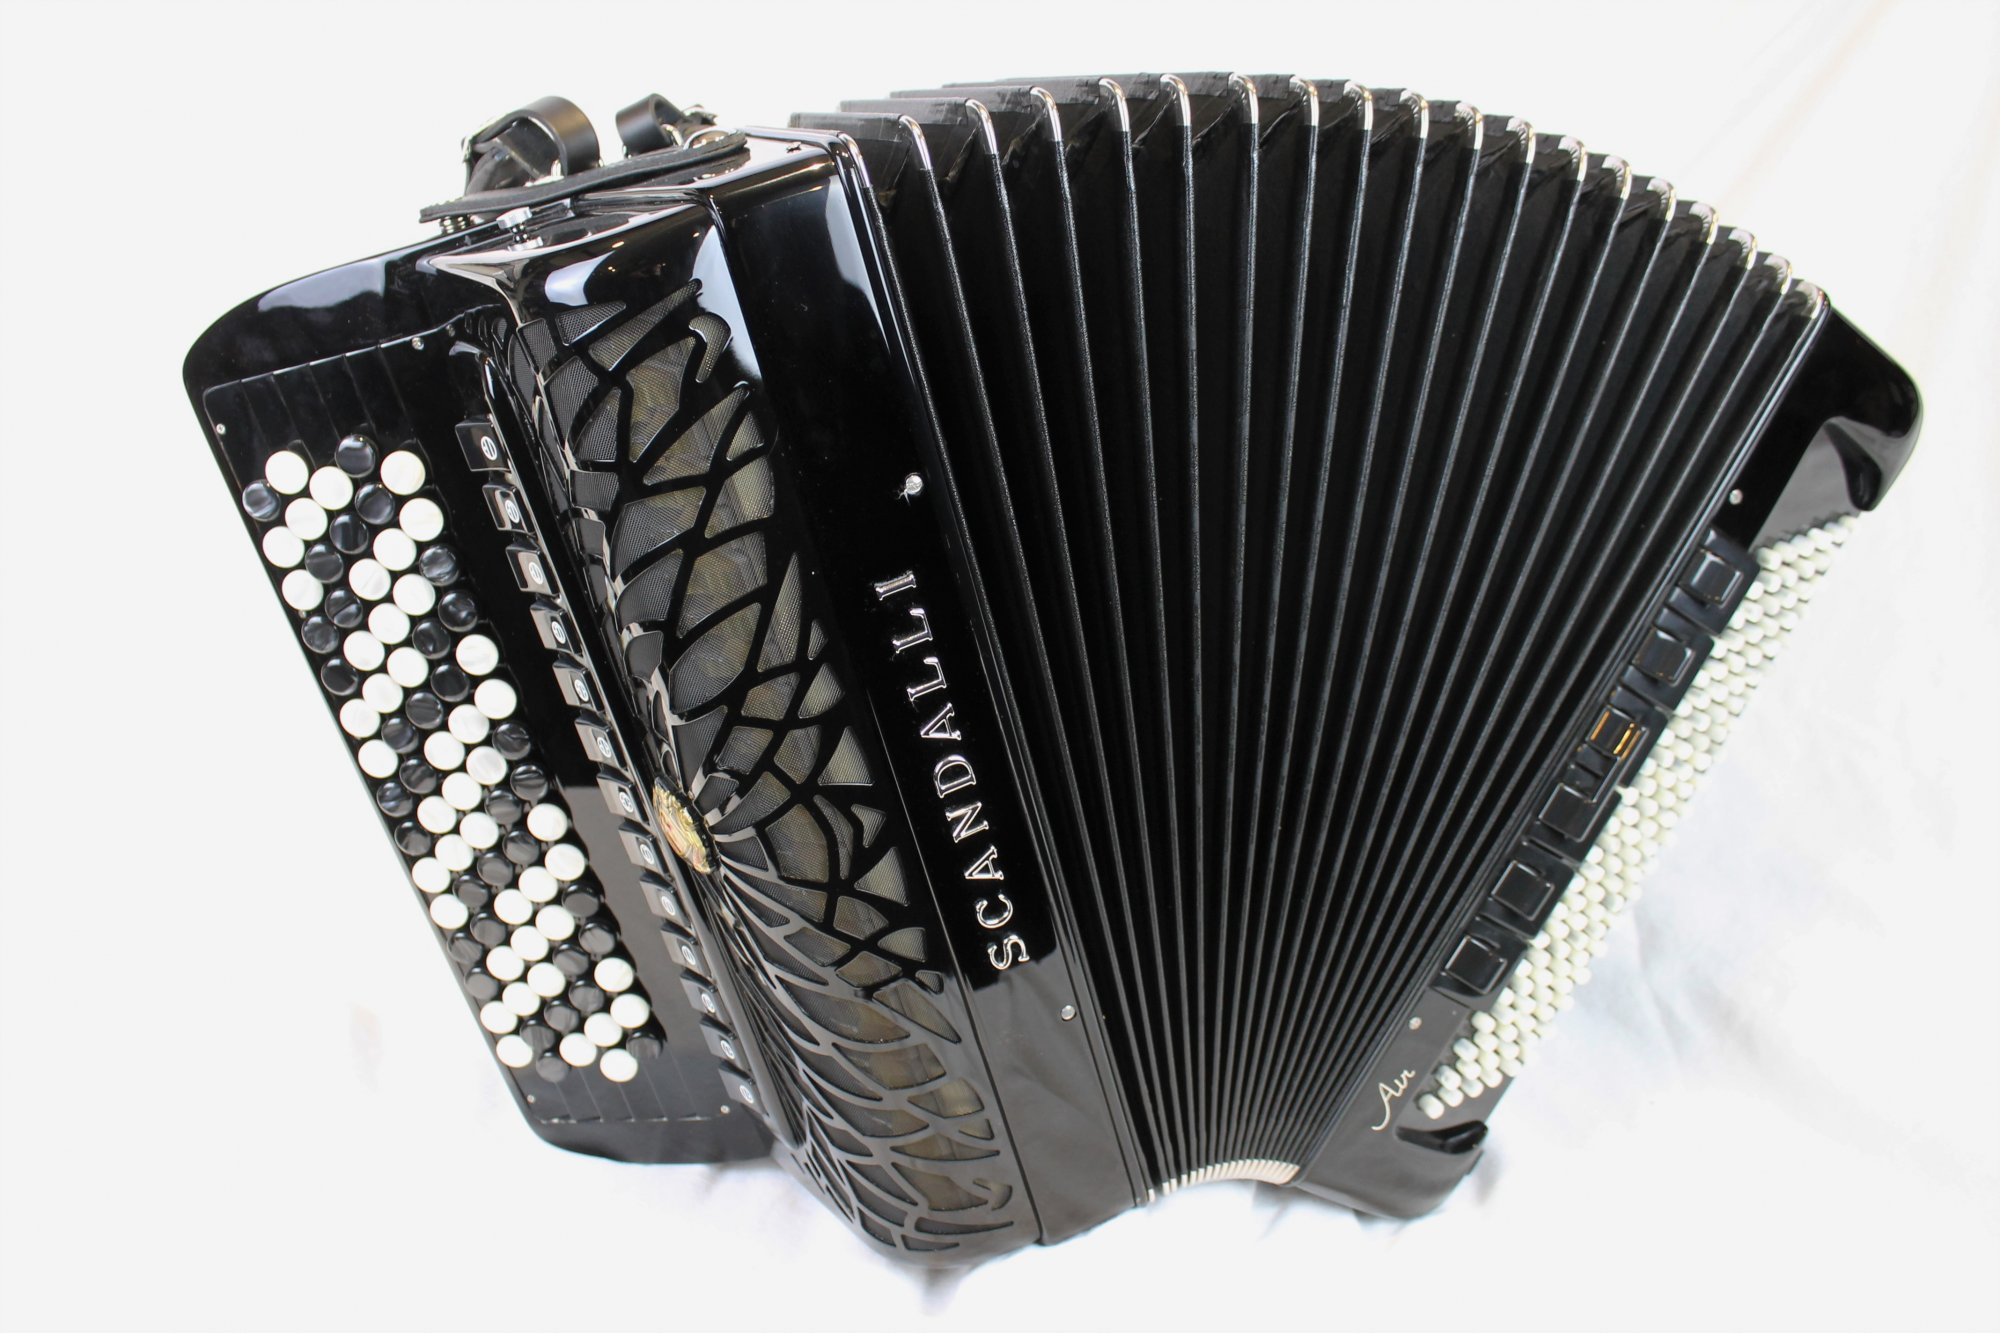 NEW Black Scandalli Air VI Chromatic Button Accordion C LMMH 77 120